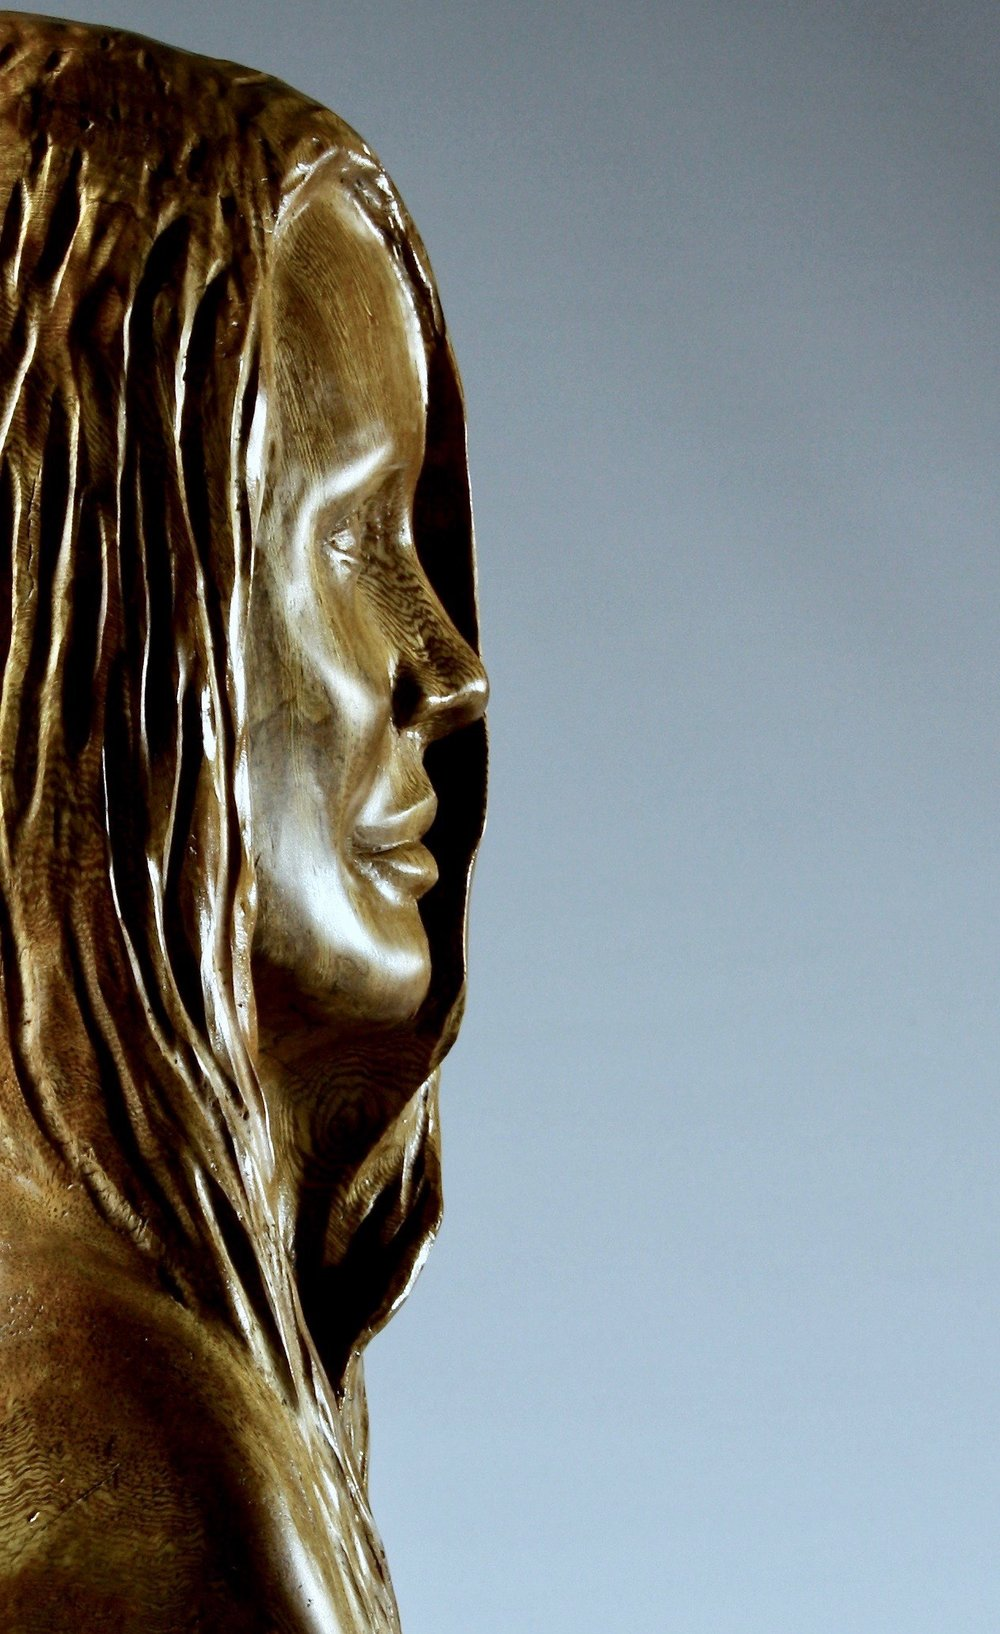 'Angelina'     Dimensions: 45x25x22 cm   Wood:  Moreton Bay Fig   Artist Statement:  The battle celebrities face to keep some part of their lives private is portrayed by half of Angelina's face being hidden behind her hair.